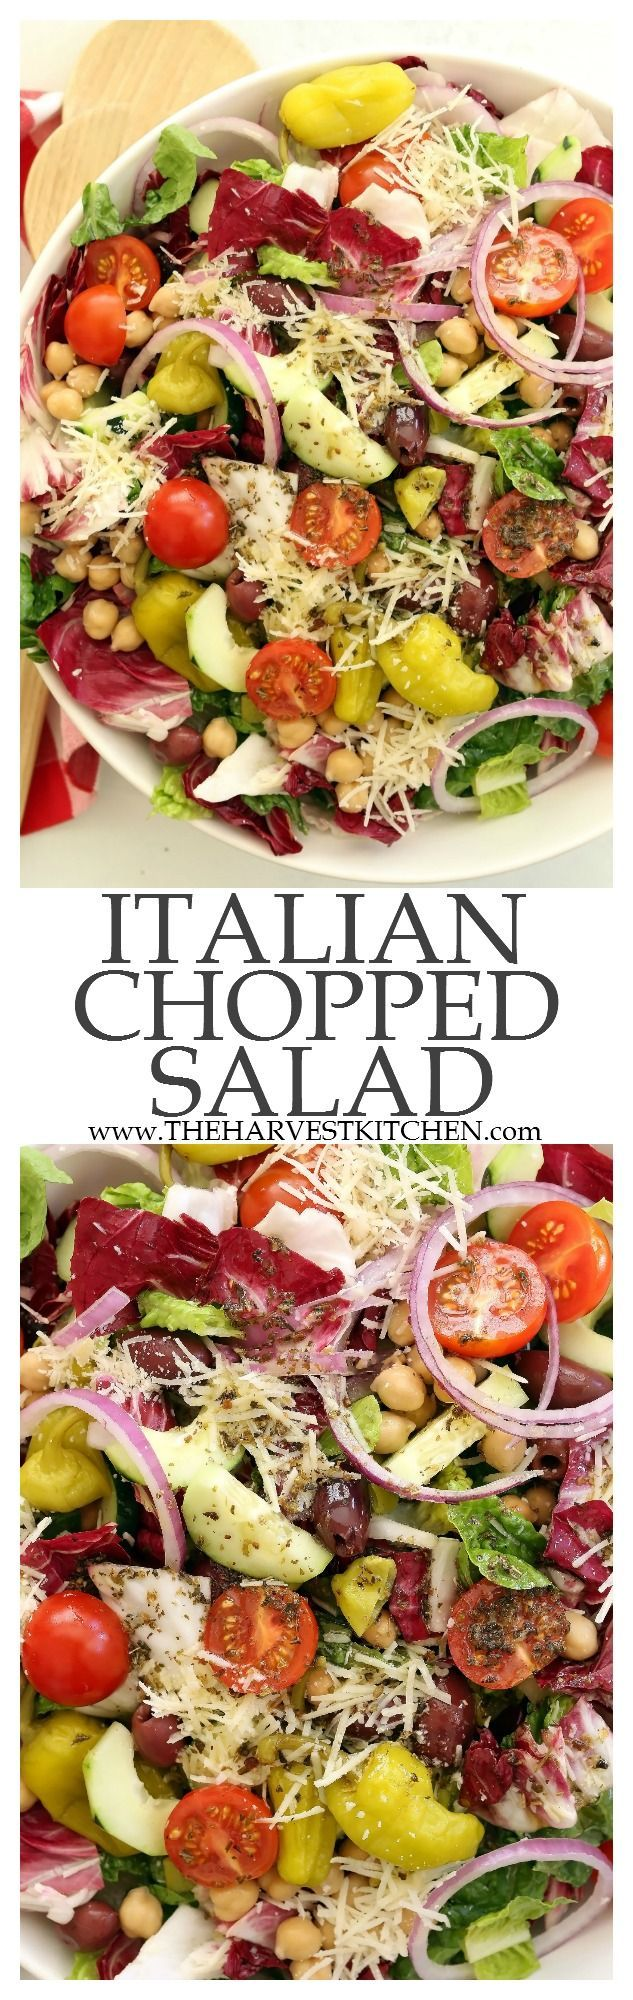 This Italian Chopped Salad is a quintessential chopped salad that's loaded with flavor and a delicious combo of ingredients. It's great to serve with any Italian dish, grilled chicken or salmon, yet filling enough to be a meal on its own. Perfect for warm summer nights, backyard barbecues and potlucks. | healthy recipes | | clean eating | | vegetarian salad | | chopped salad recipes |